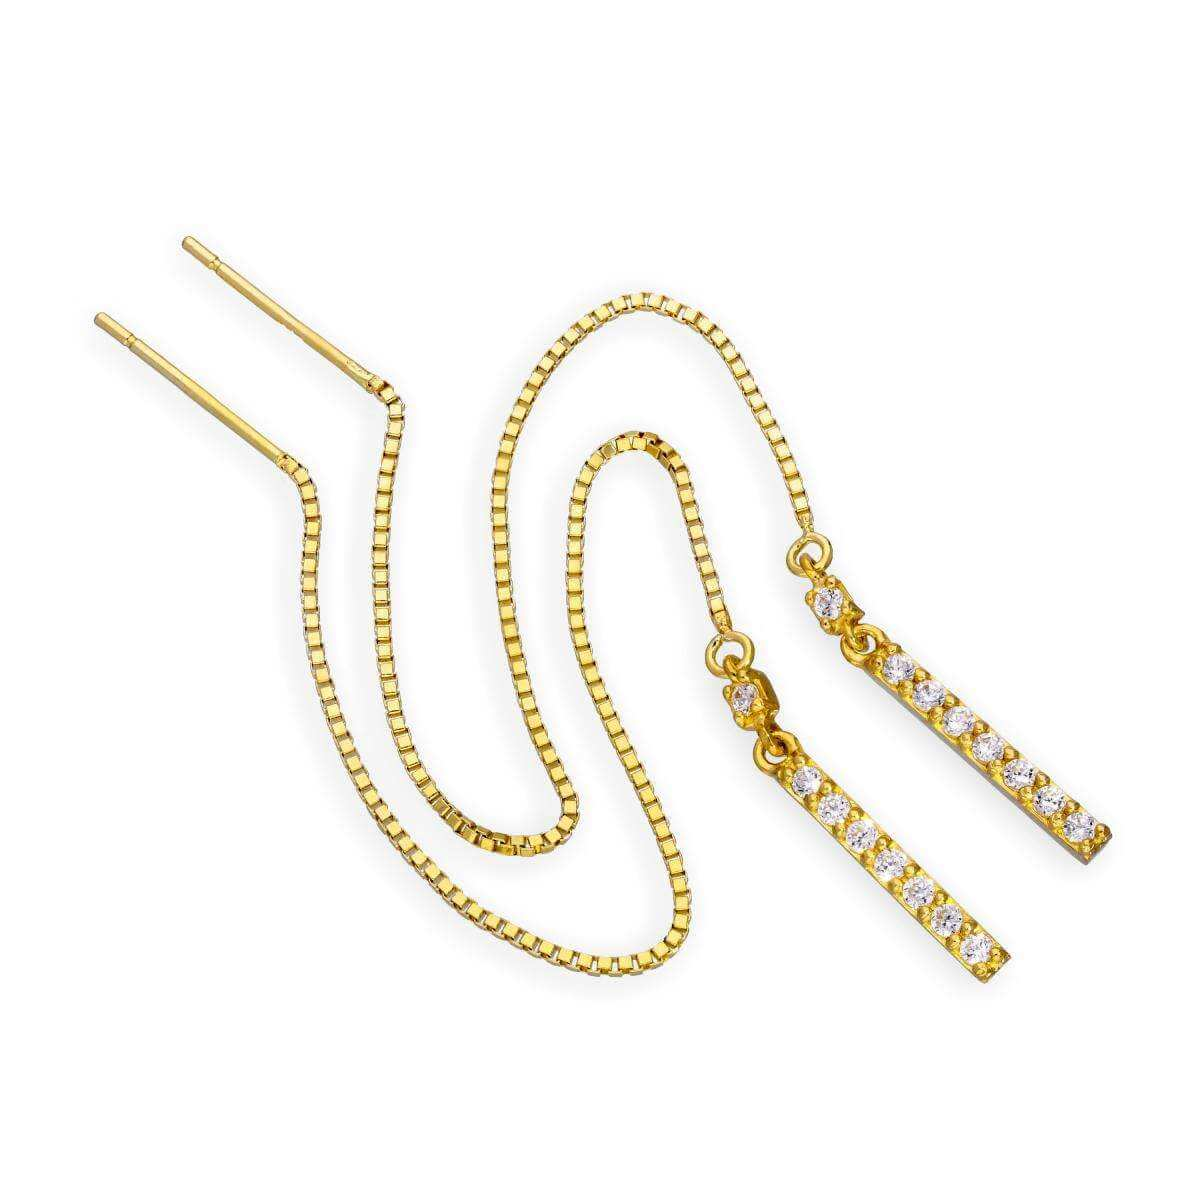 9ct Gold & Clear CZ Crystal Bar Pull Through Earrings